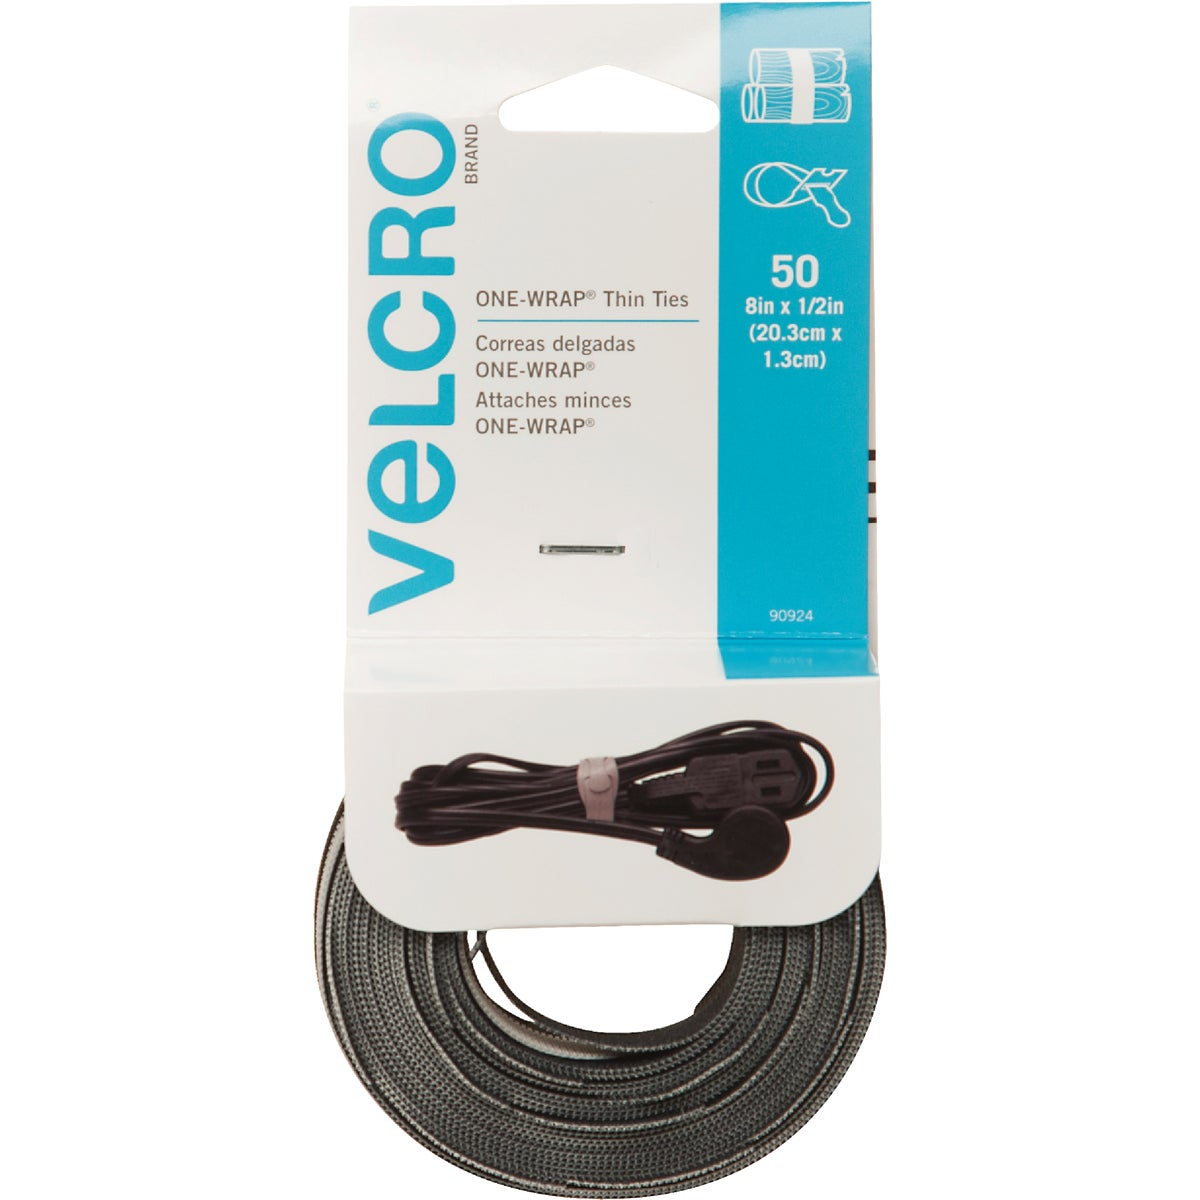 50CT BLK REUSABLE TIES - 90924 by Velcro Usa